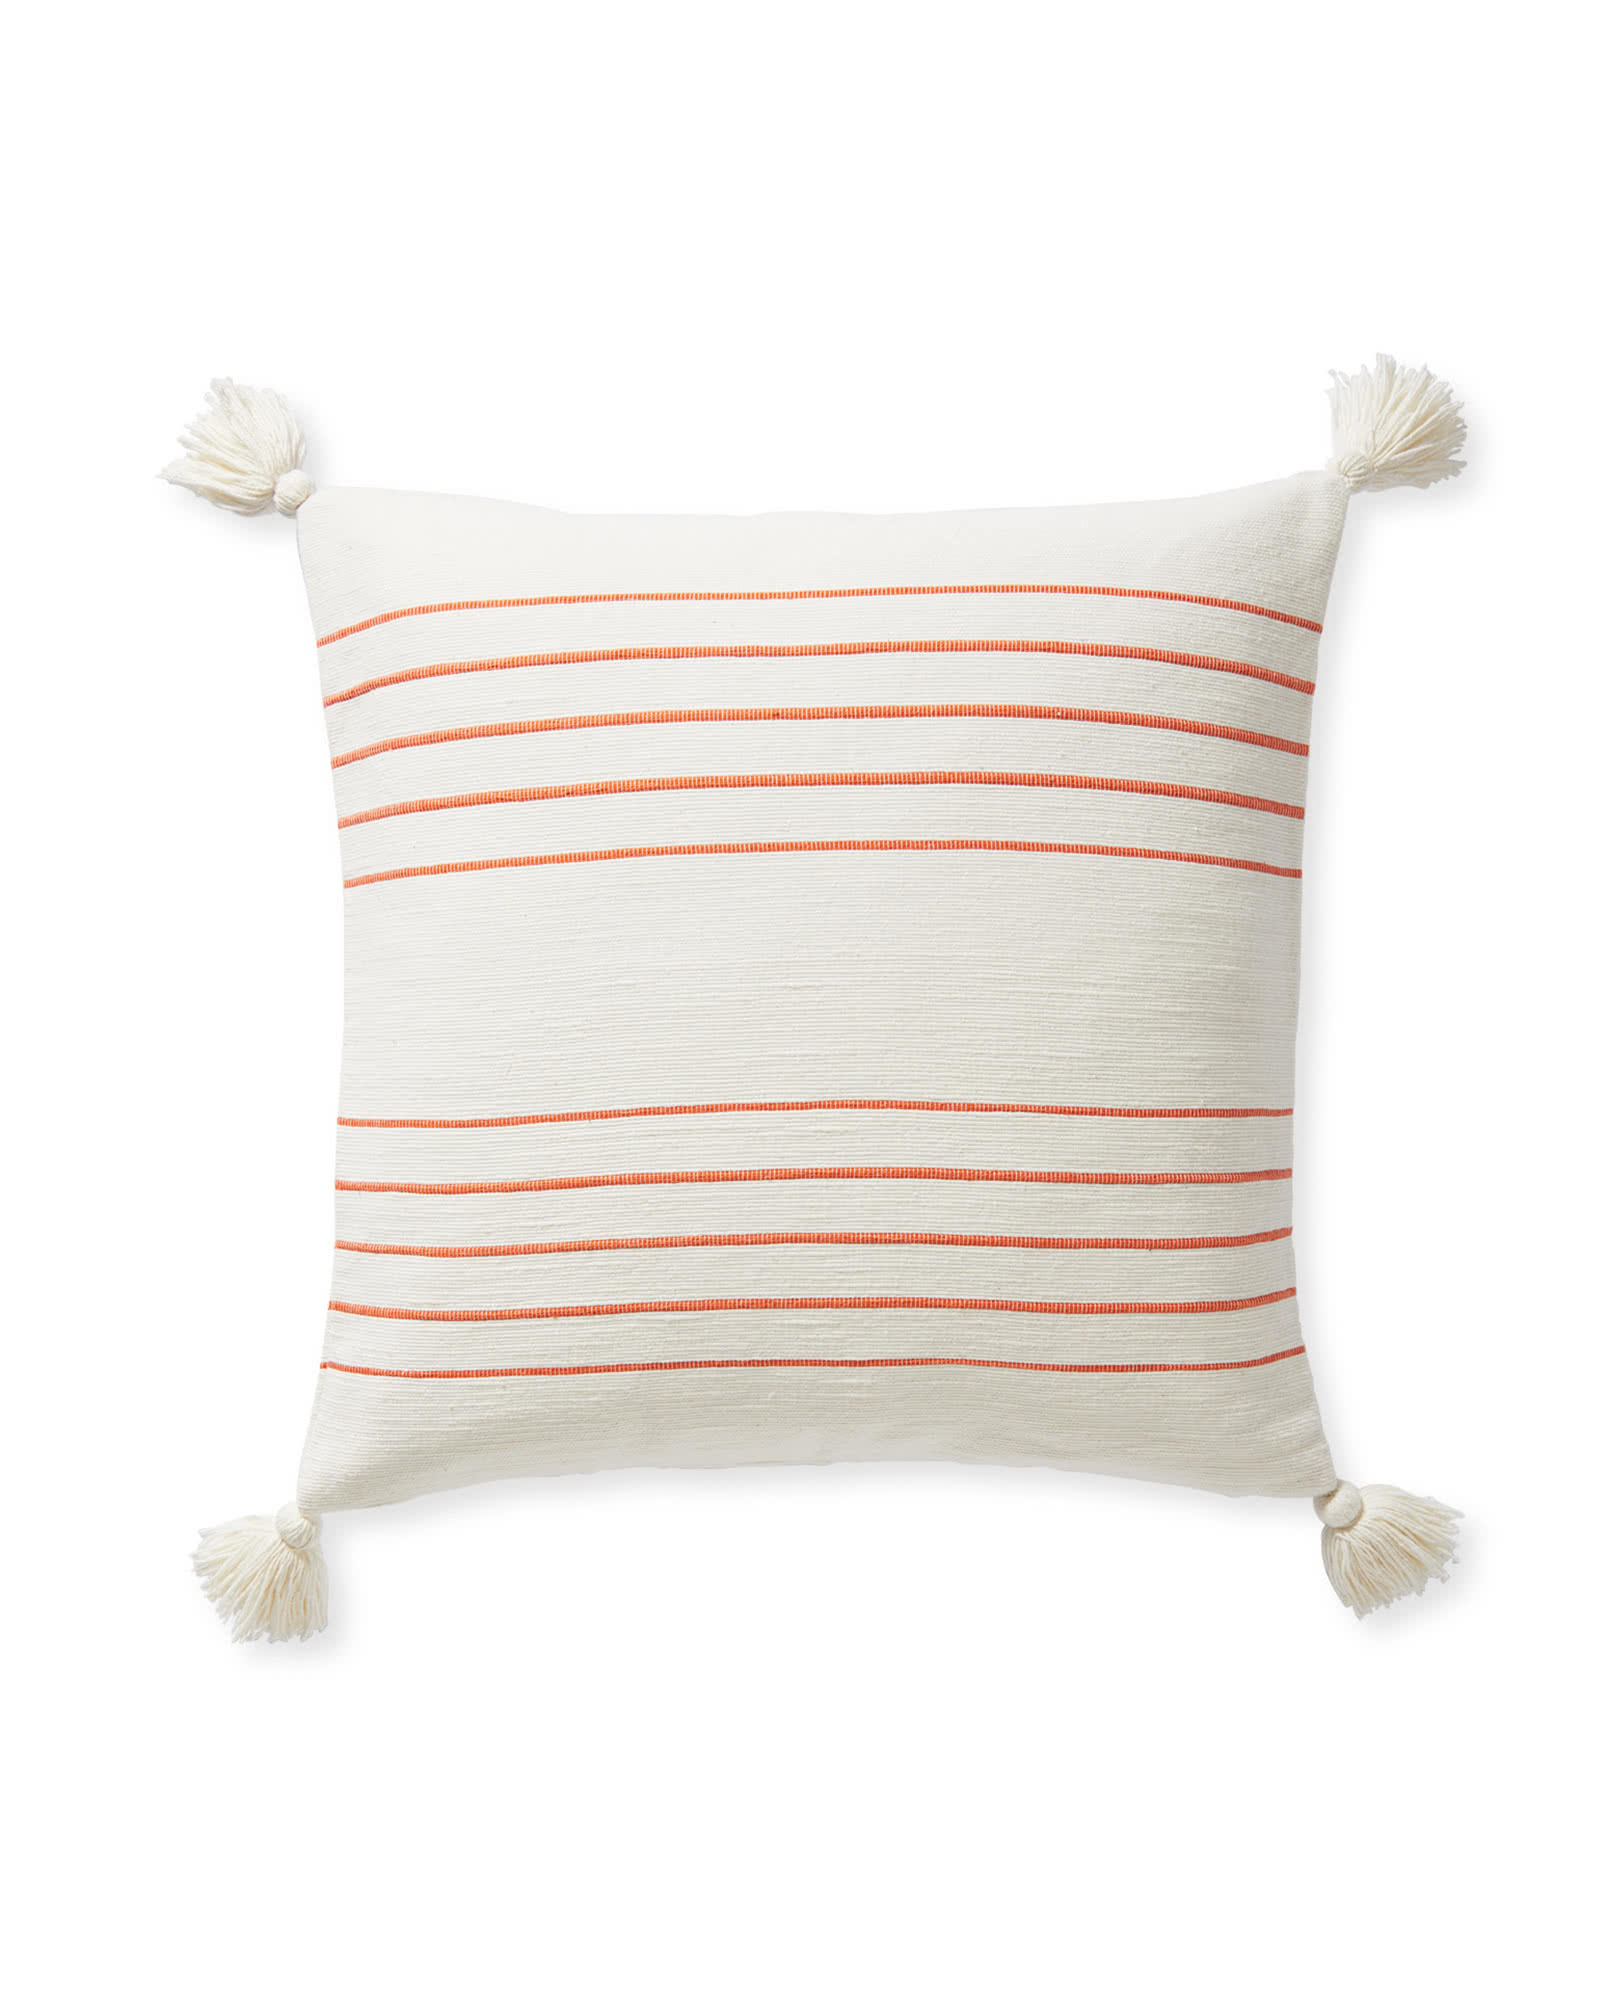 Del Mar Pillow Cover, Papaya